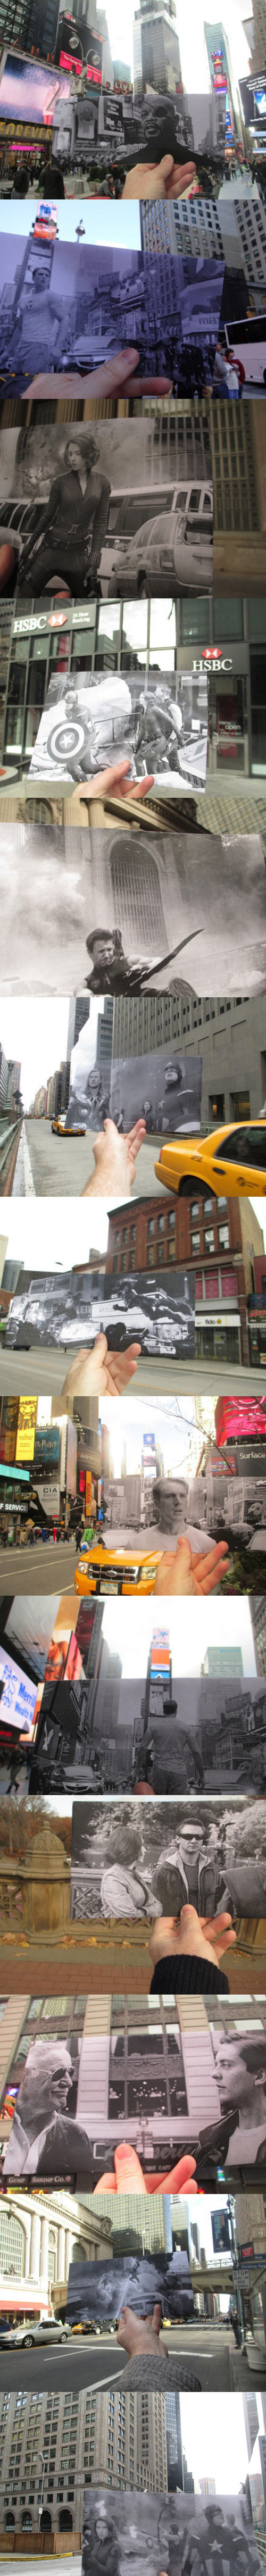 cool-photograph-Avengers-movie-real